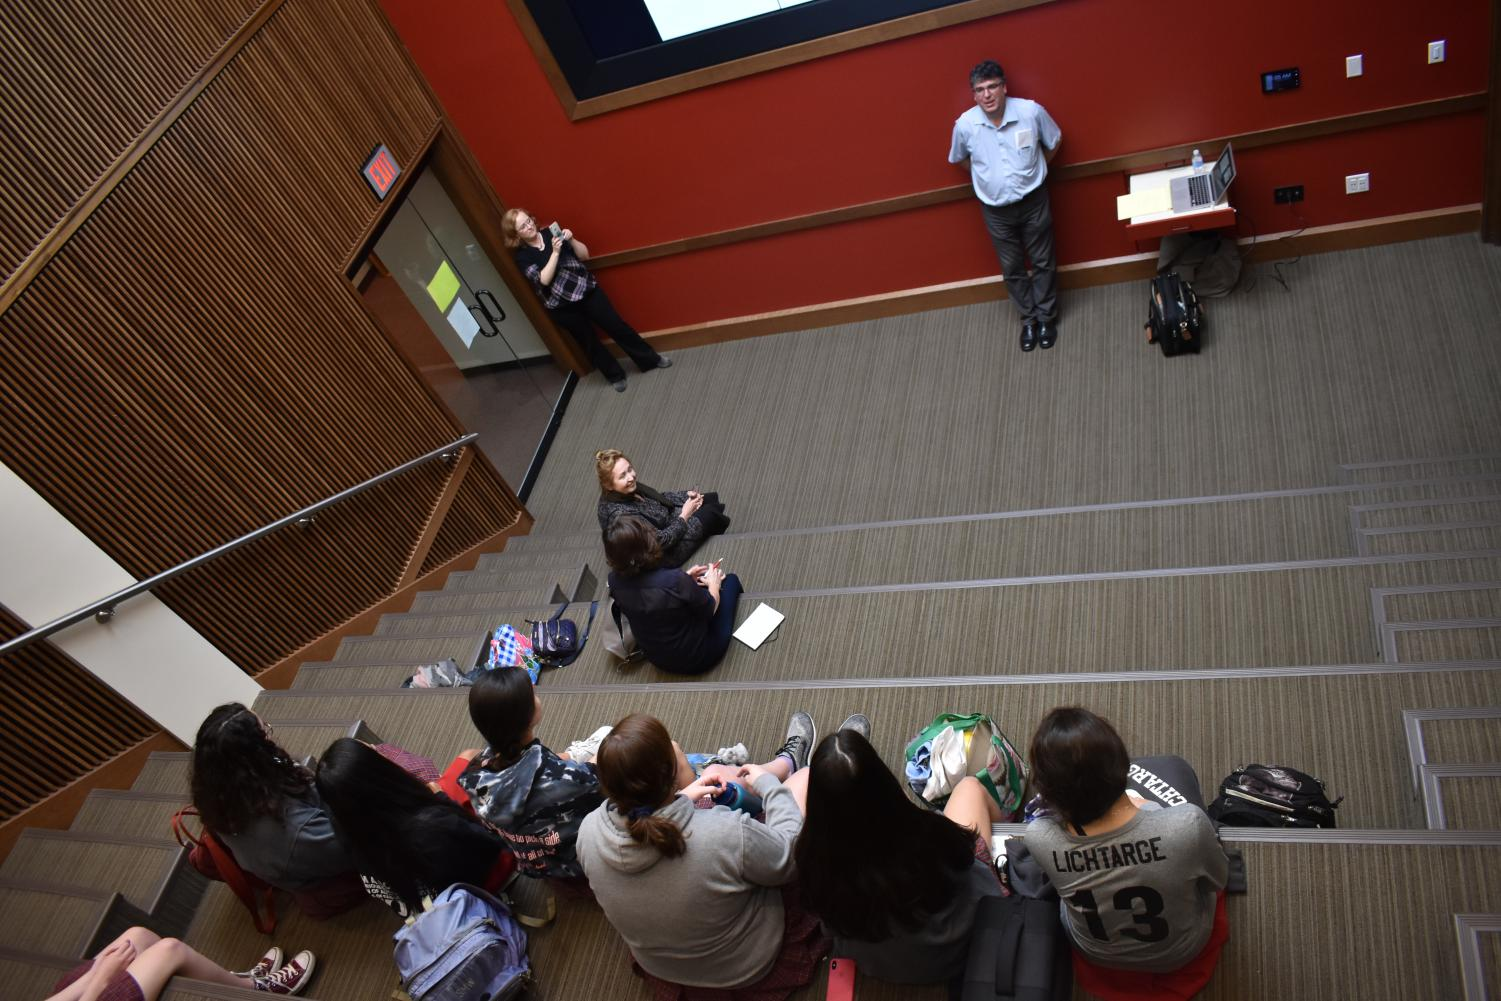 Nadeau's presentation was one of the first to be held in the new Atrium.